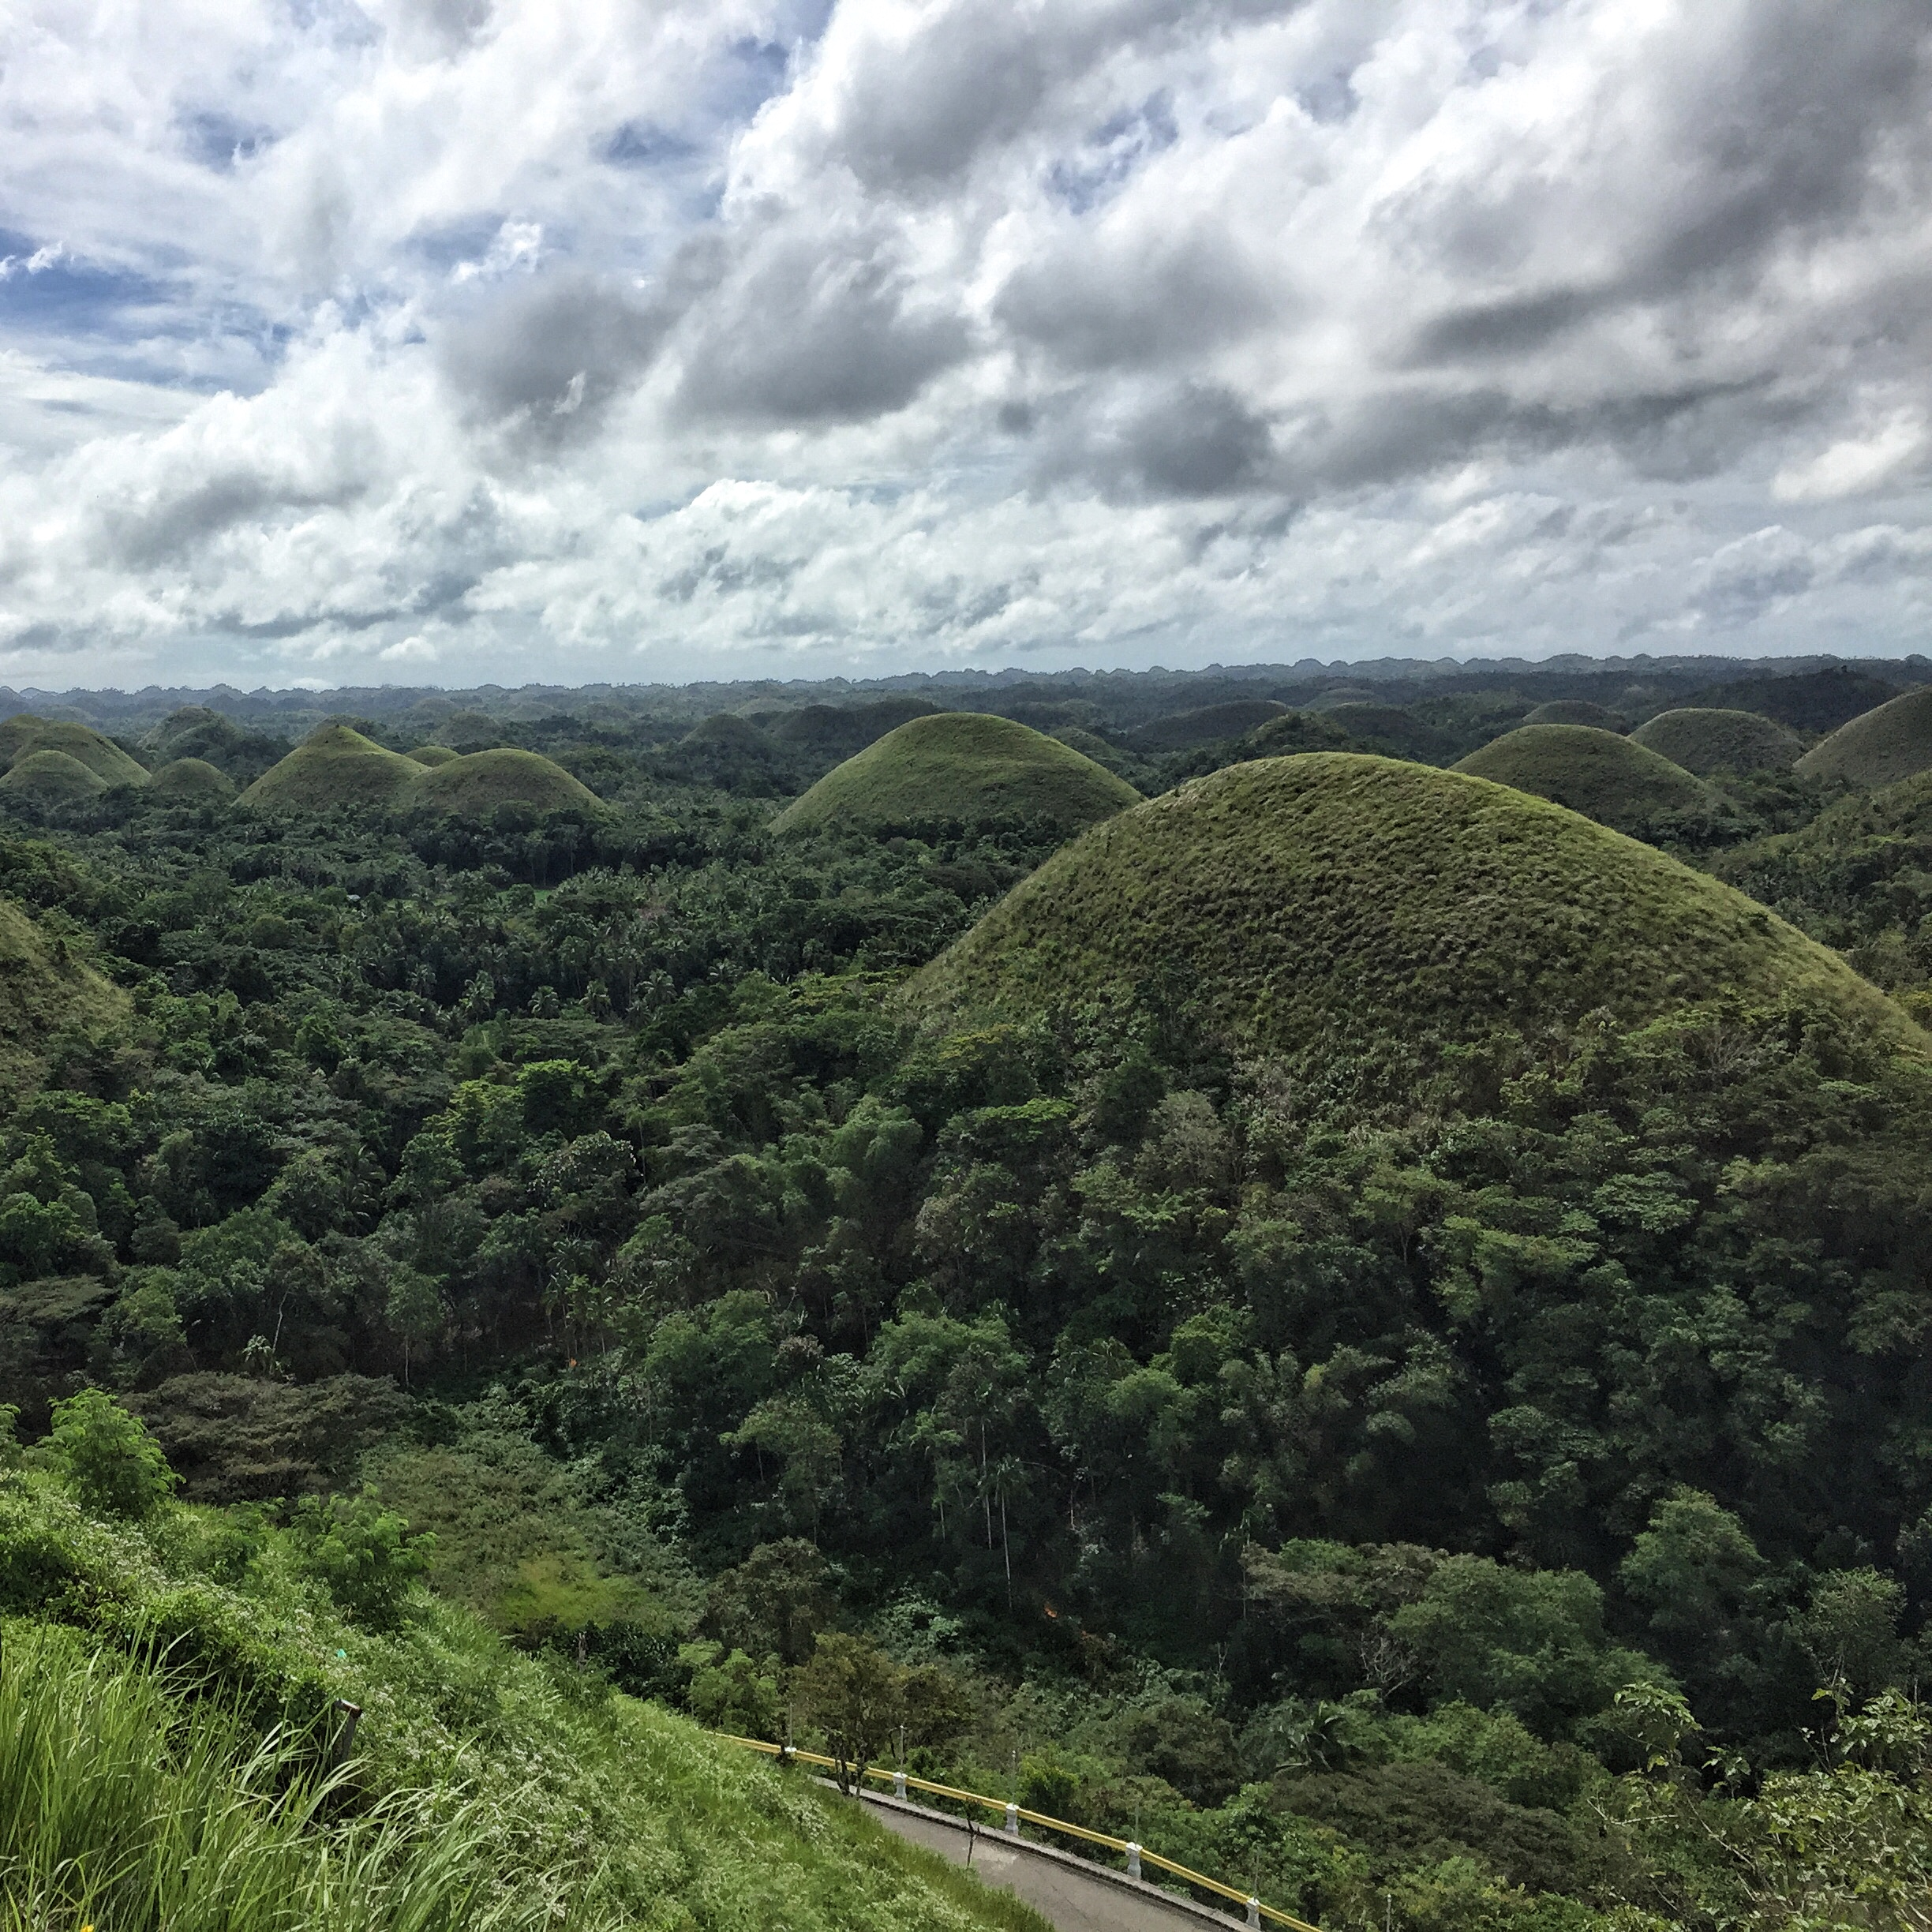 The Chocolate Hills though good rain has kept it green and lush.